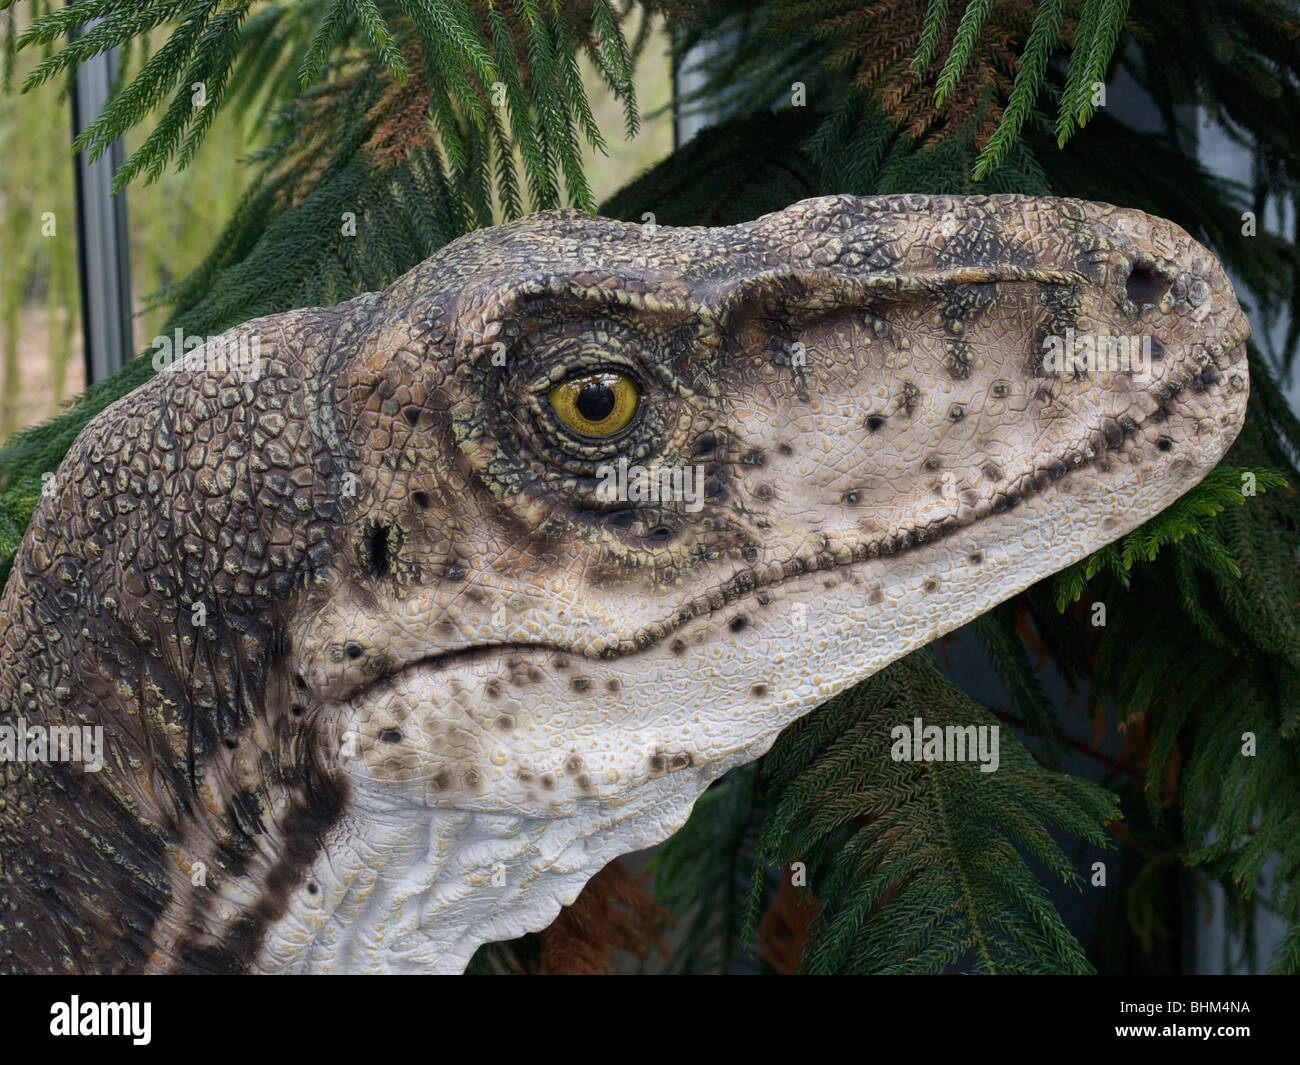 Realistic looking dinosaur model, natural history museum Boxtel, Noord Brabant, the Netherlands - Stock Image